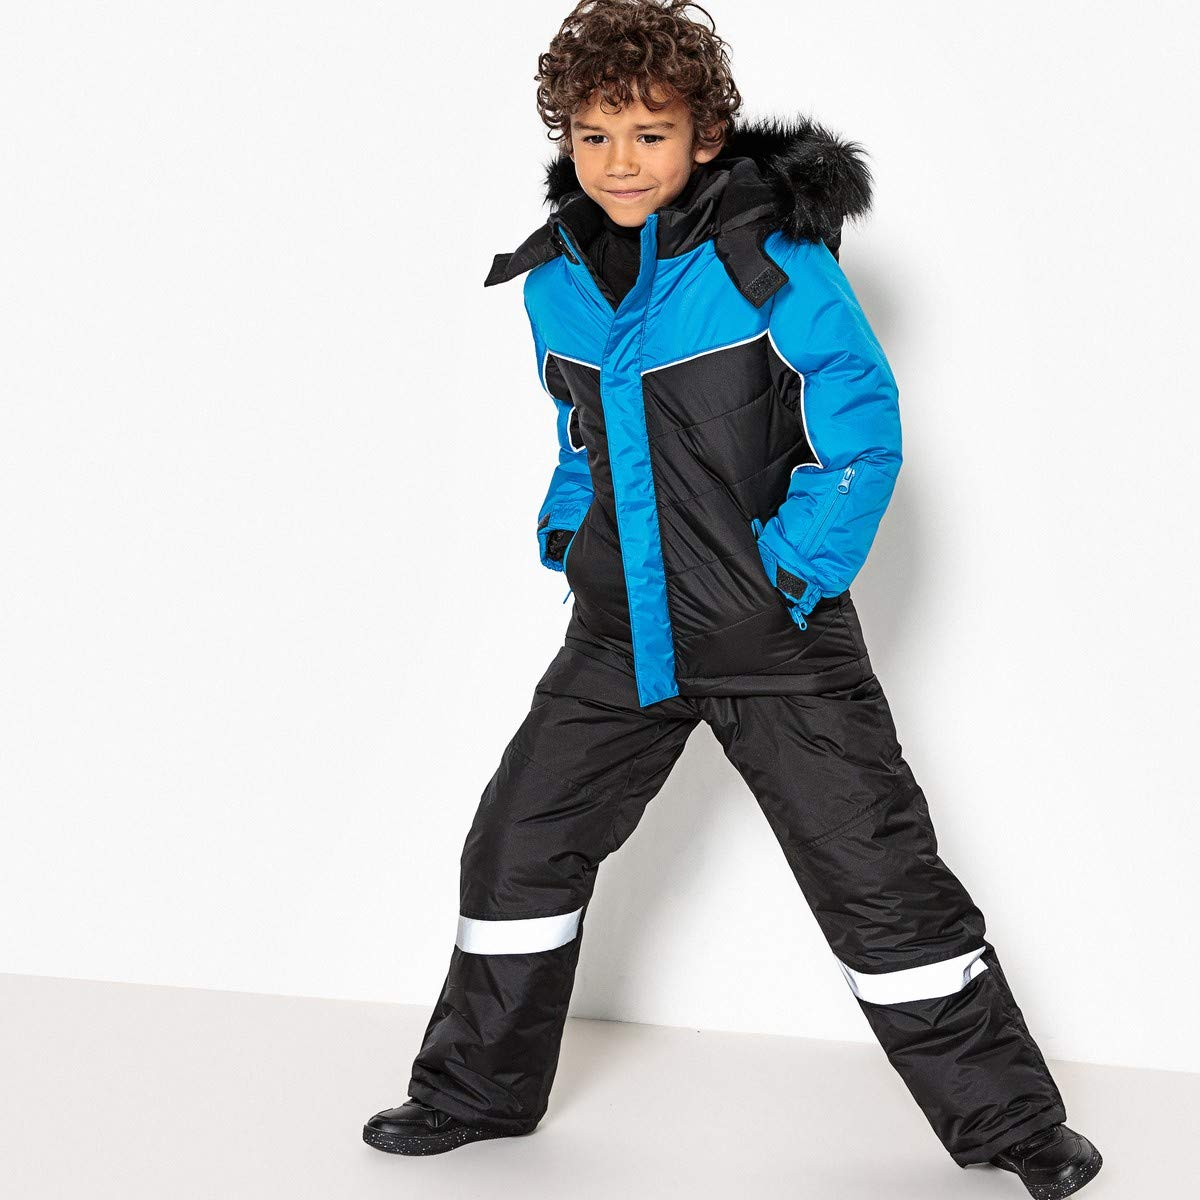 La Redoute Collections Big Boys Ski Jacket, 3-16 Years Blue Size 3 Years by La Redoute (Image #2)